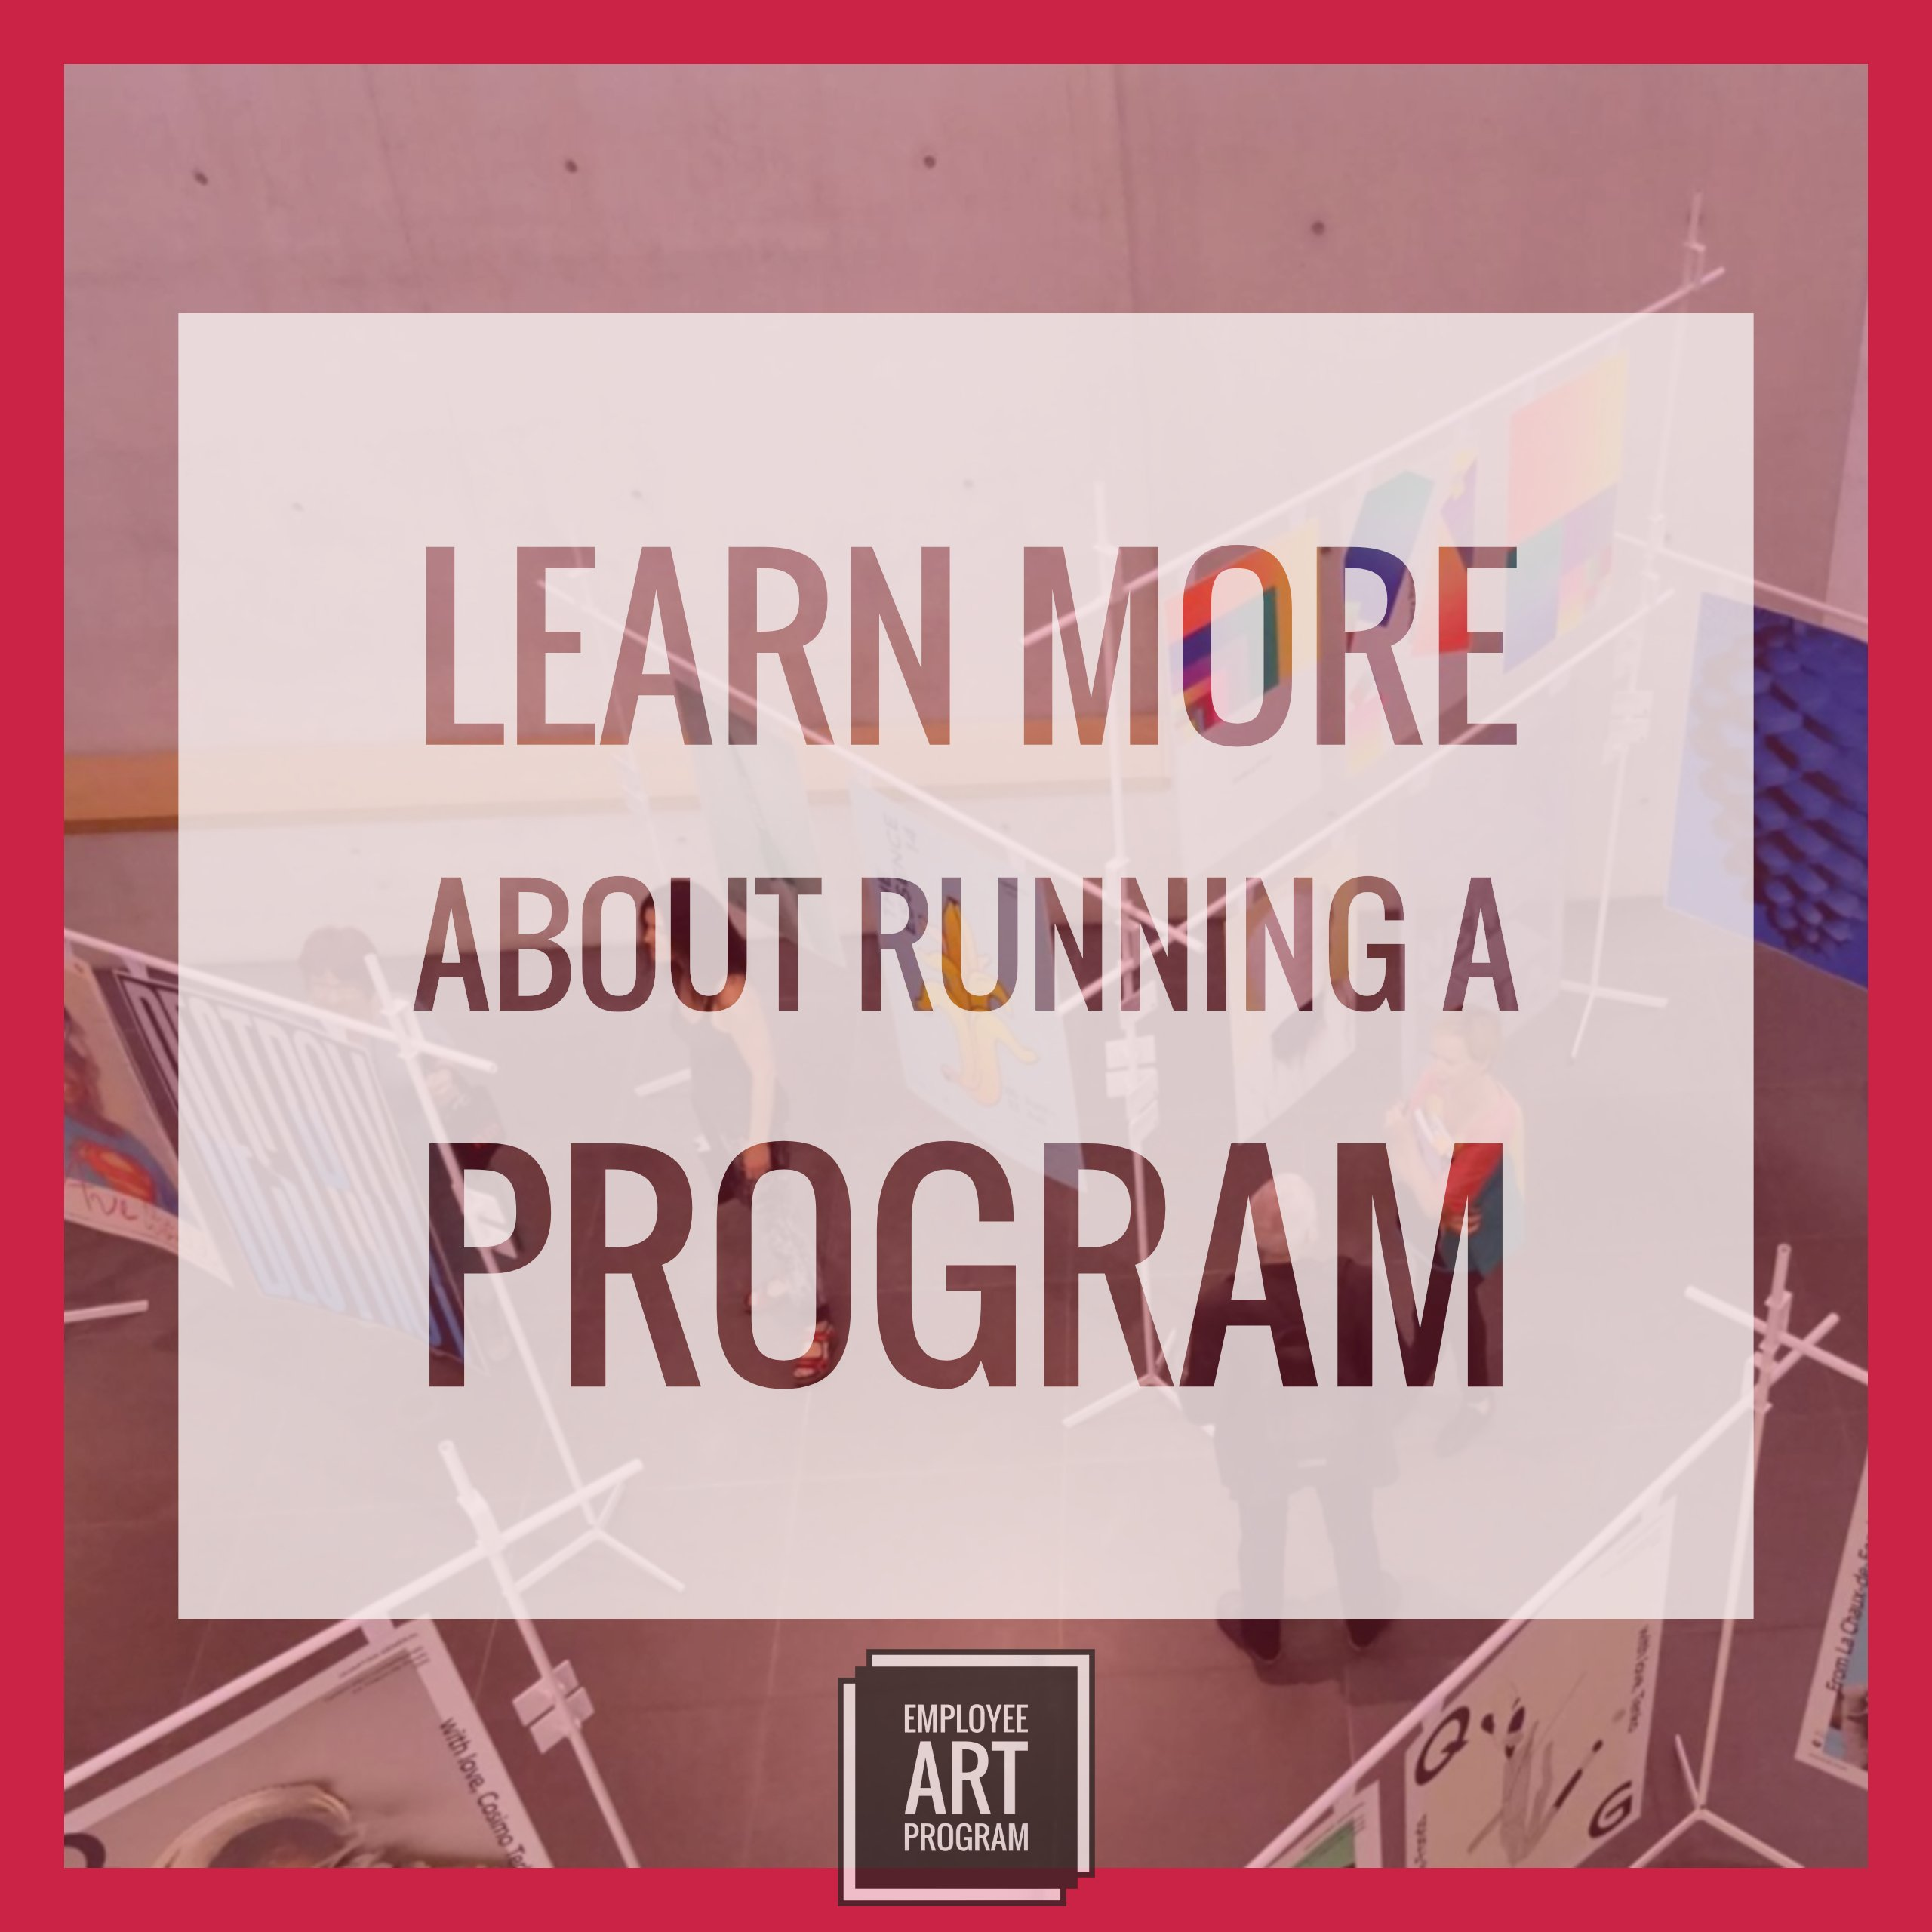 Learn More about running an employee art program